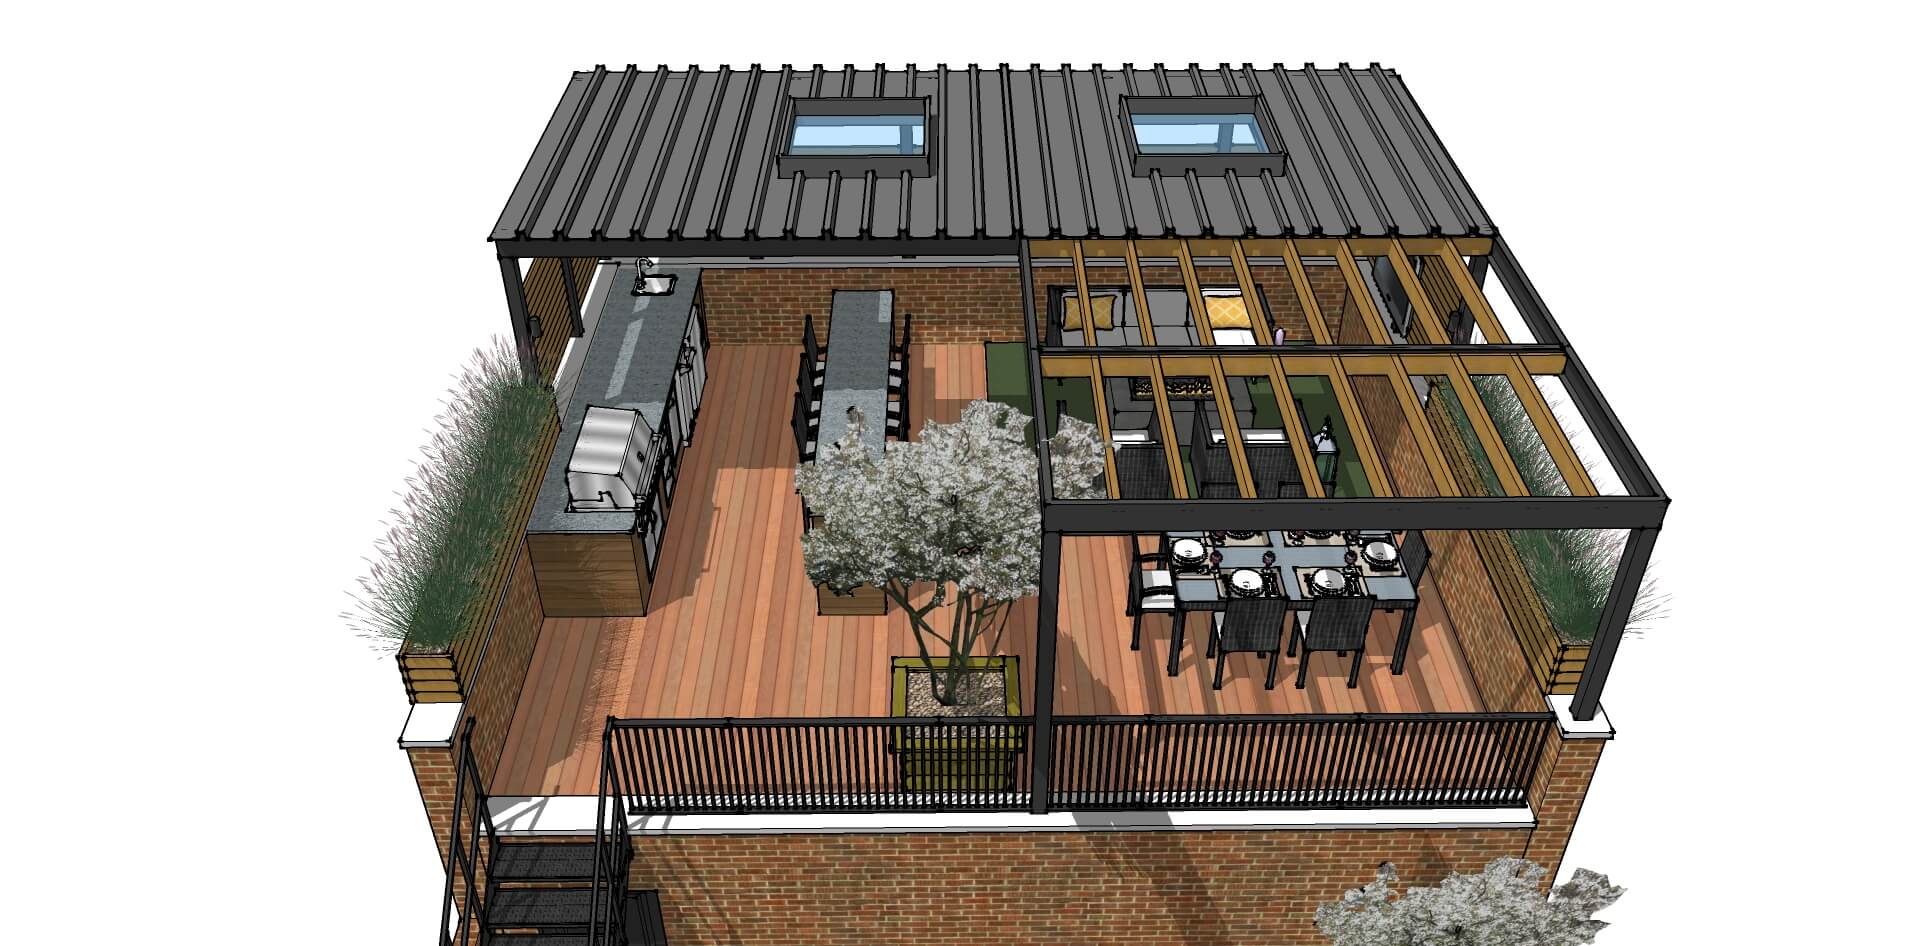 Garage Roof Deck Idea 3D Design Lakeview Chicago4